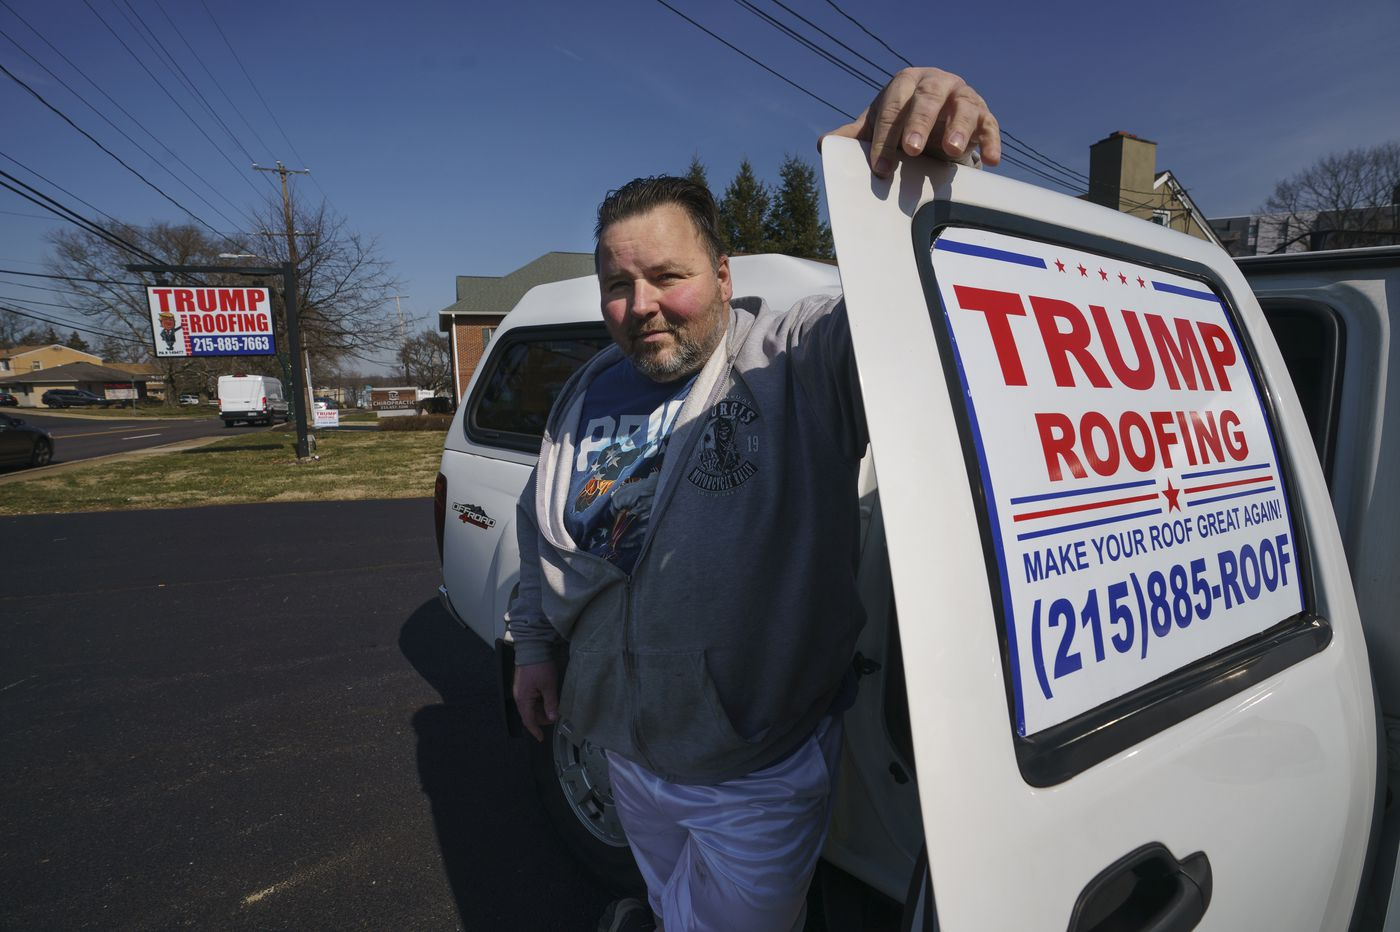 Bucks County Trump supporter aims to make roofs great again